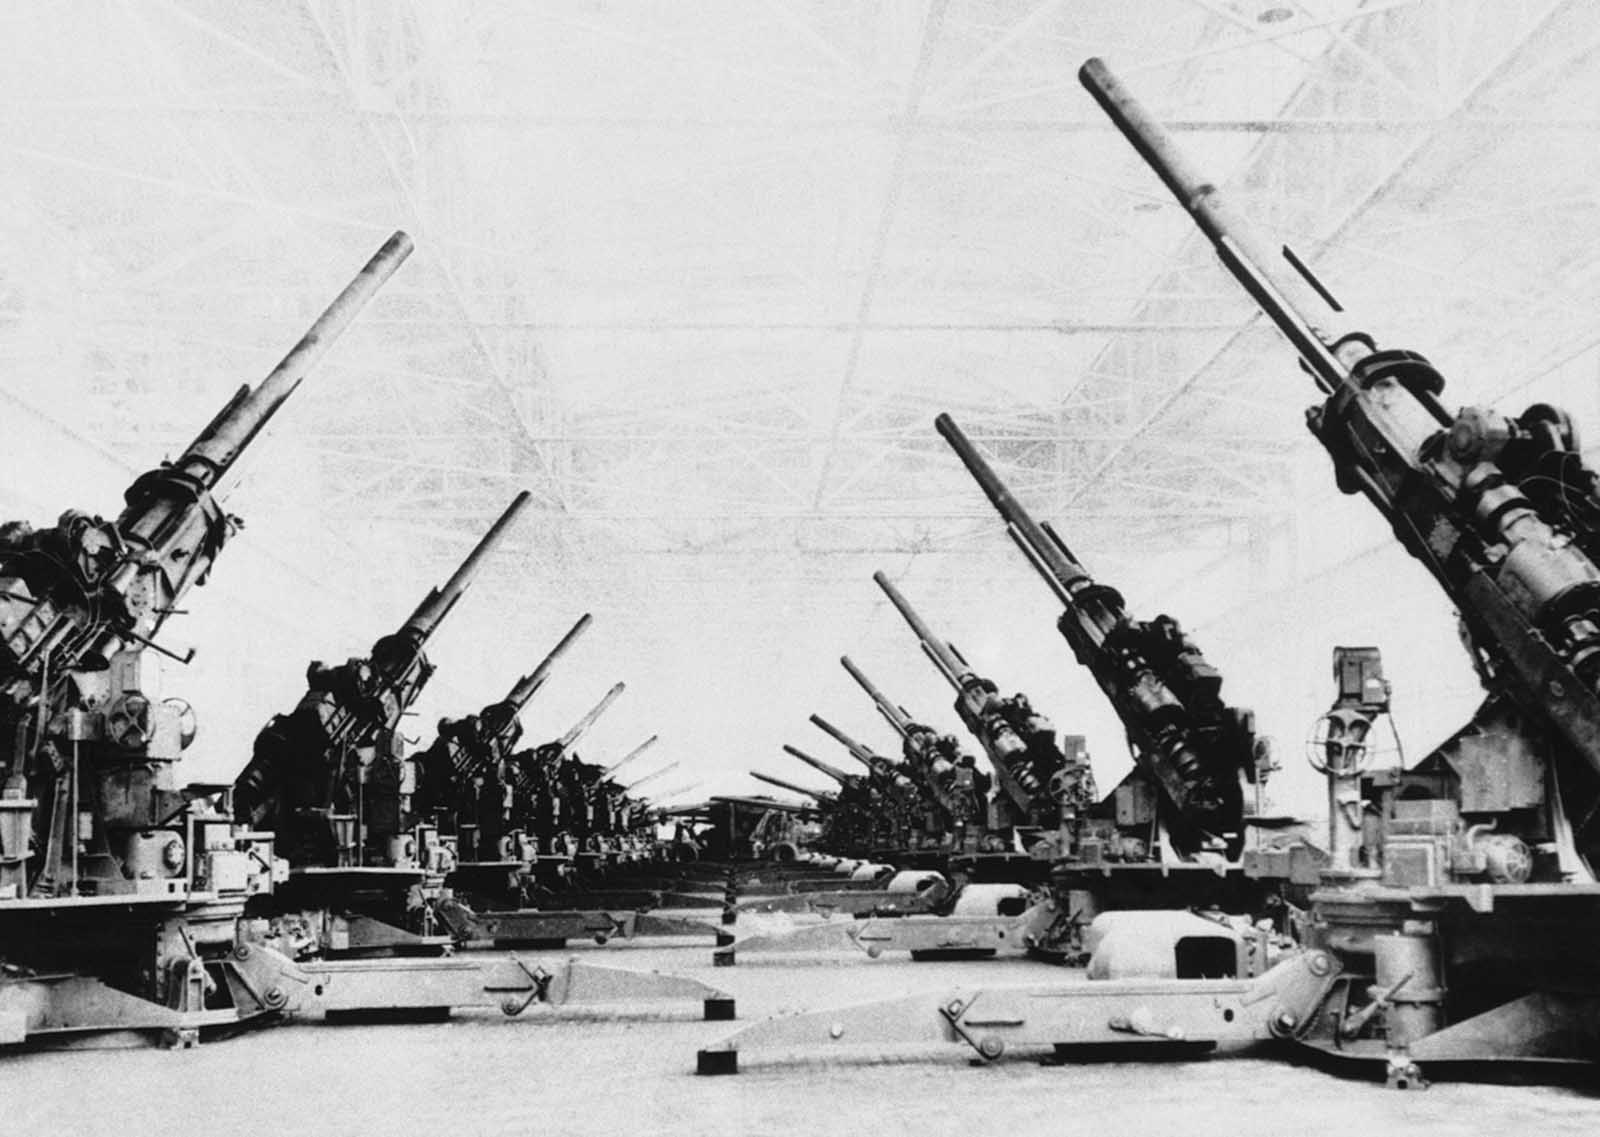 Huge anti-aircraft guns, the U.S. Army's new powerful Stratosphere guns, are lined up in the final assembly area of the Grand Rapids stamping division of Fisher Body in Detroit on June 1, 1944, prior to shipping.